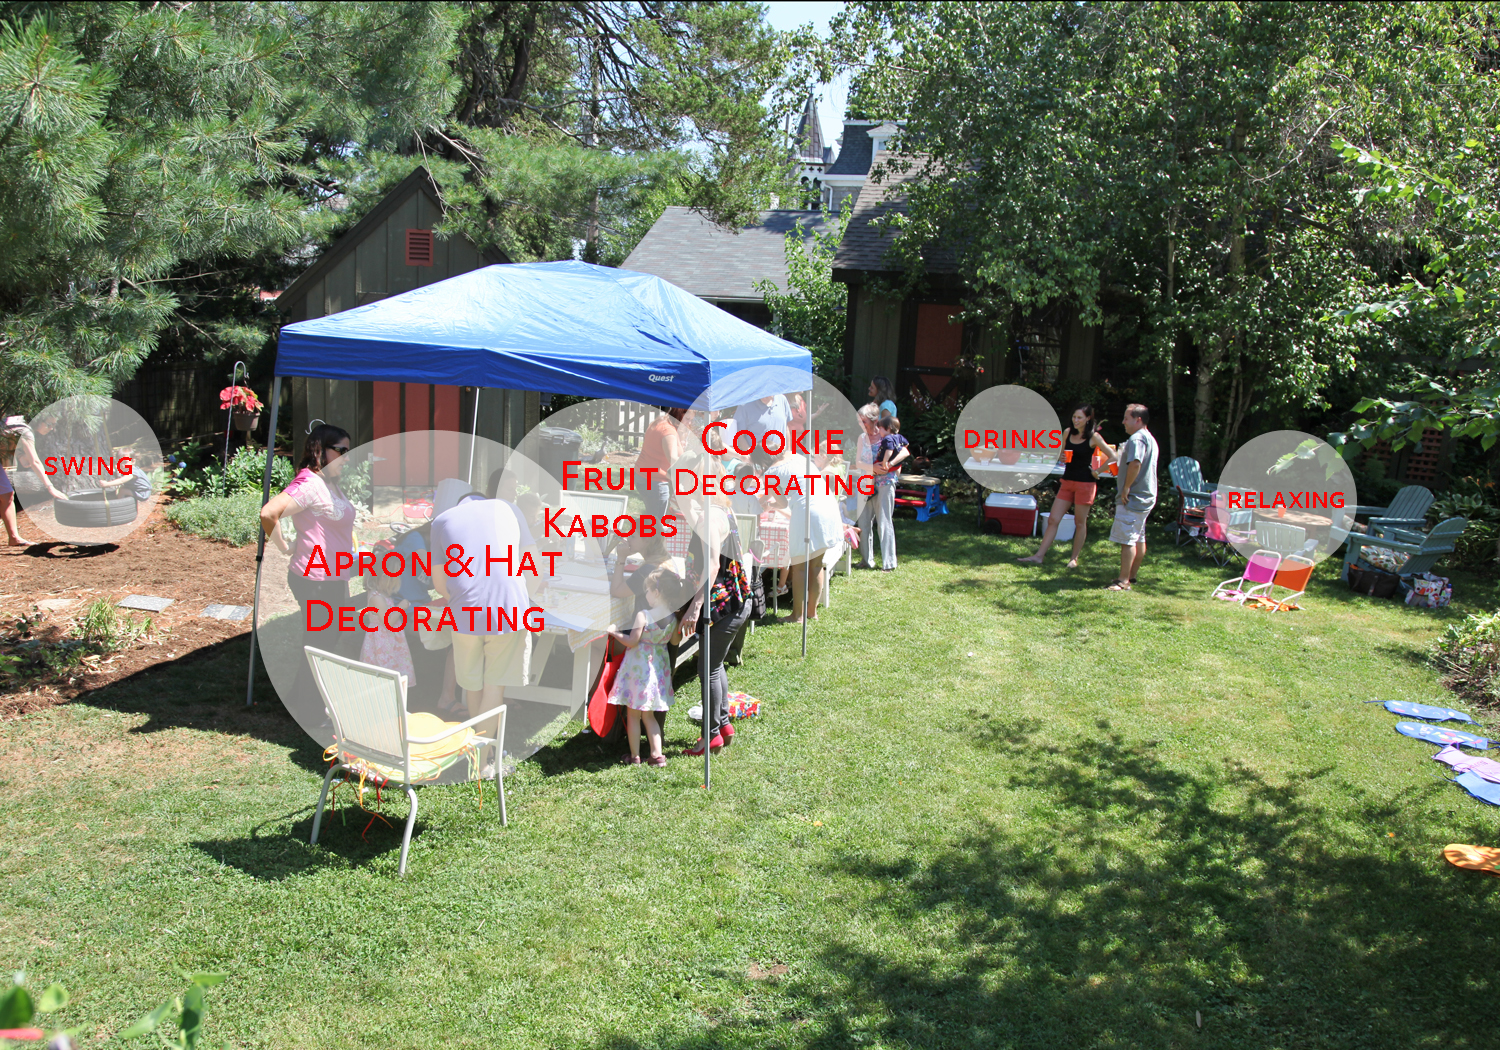 Decorations For Backyard Party : Displaying 14> Images For  Backyard Party Ideas Decorating